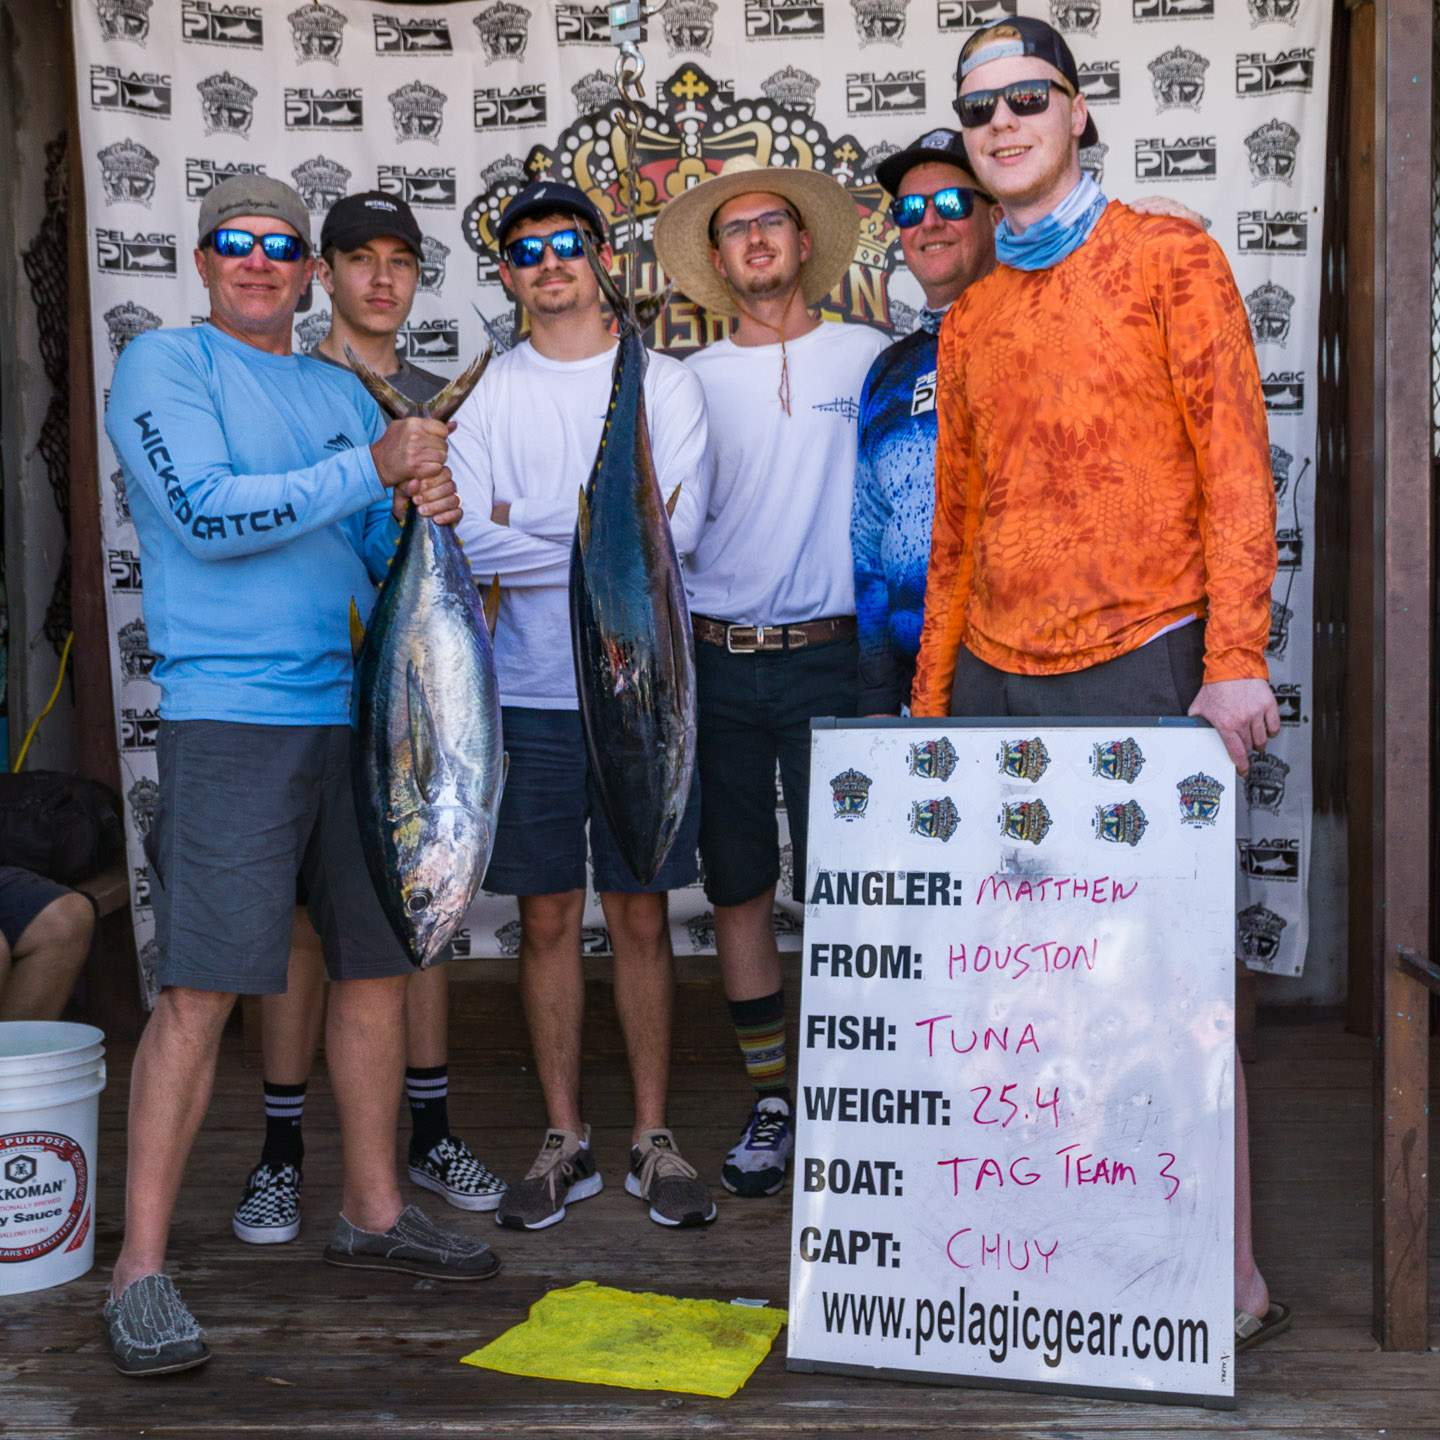 2019 Pelagic Triple Crown Cabo Tag Team III Tuna